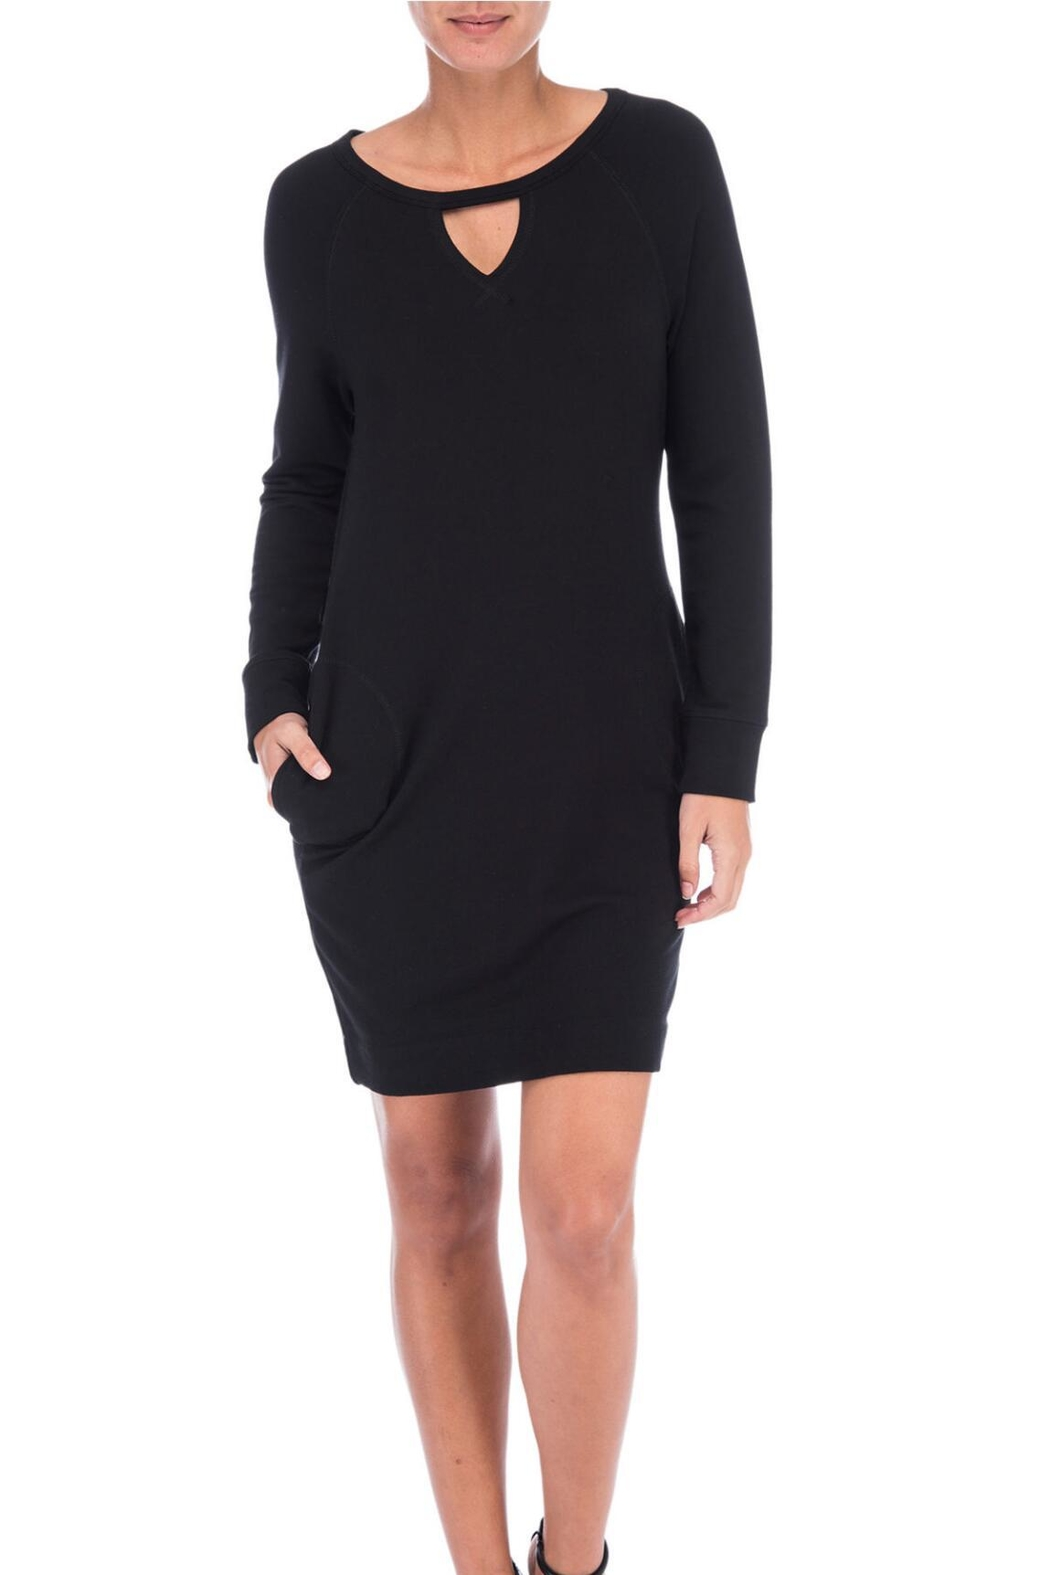 Bobeau Orson Sweatshirt Dress - Main Image